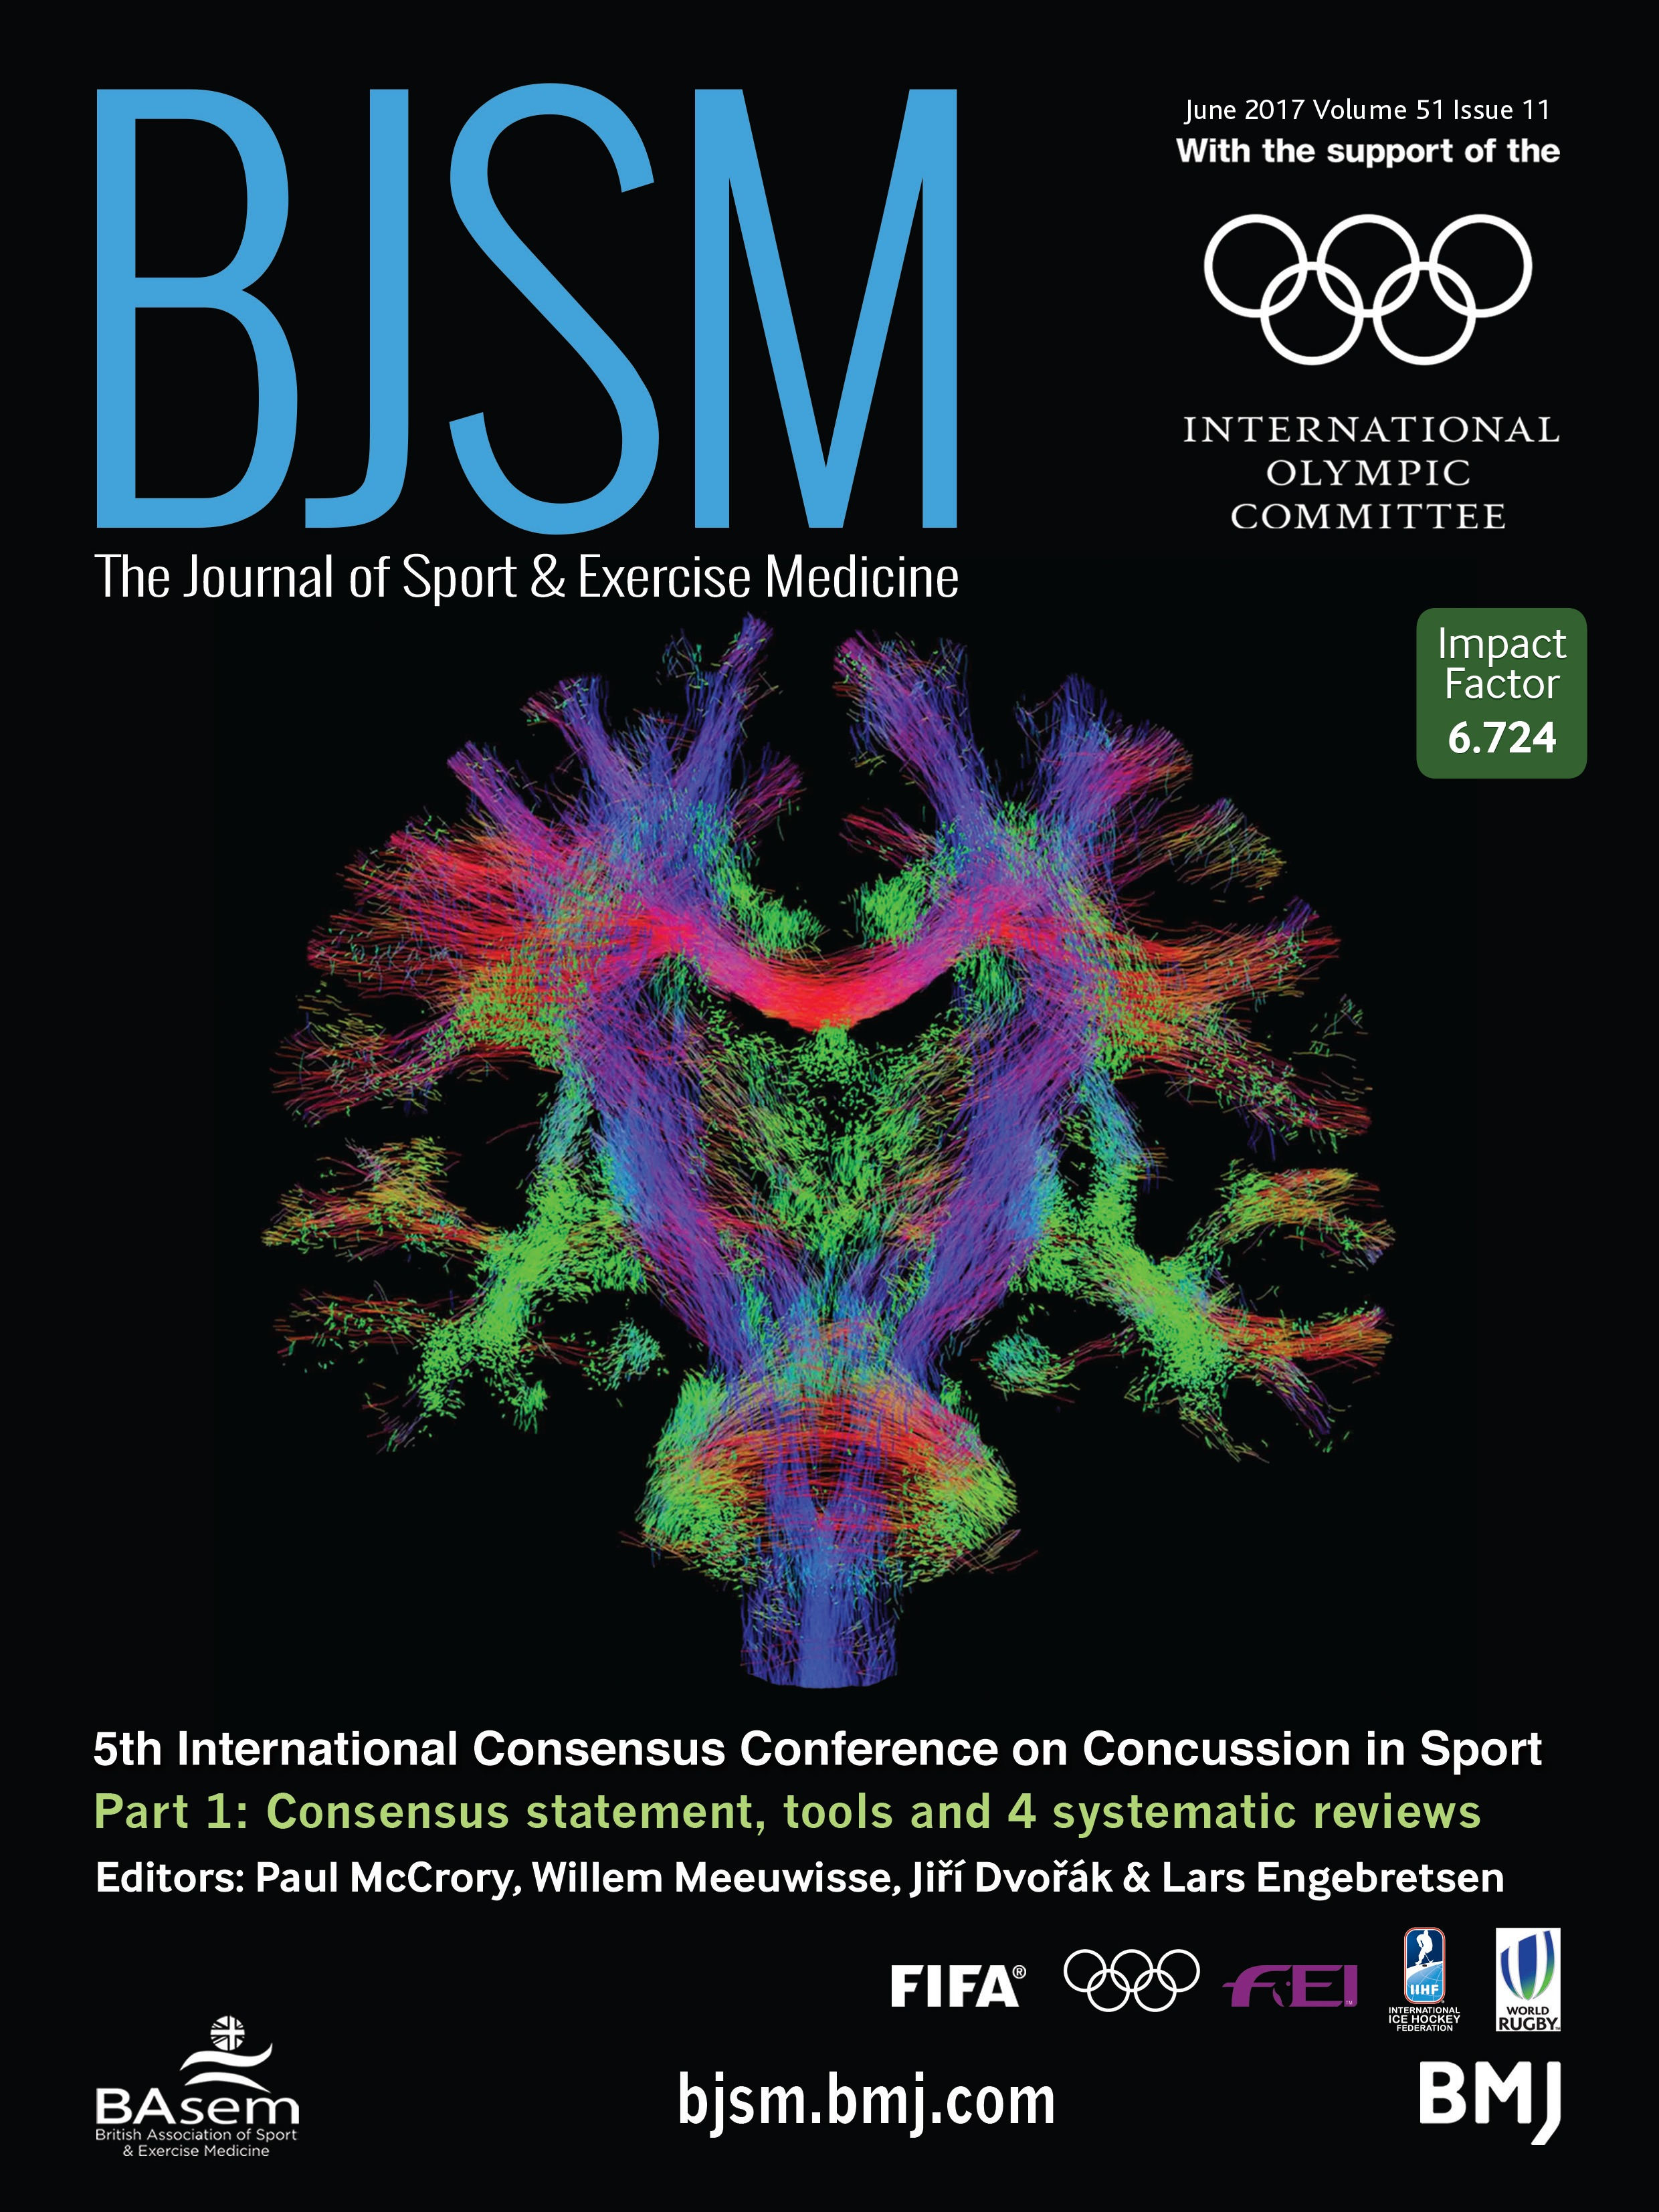 Consensus statement on concussion in sport—the 5th international